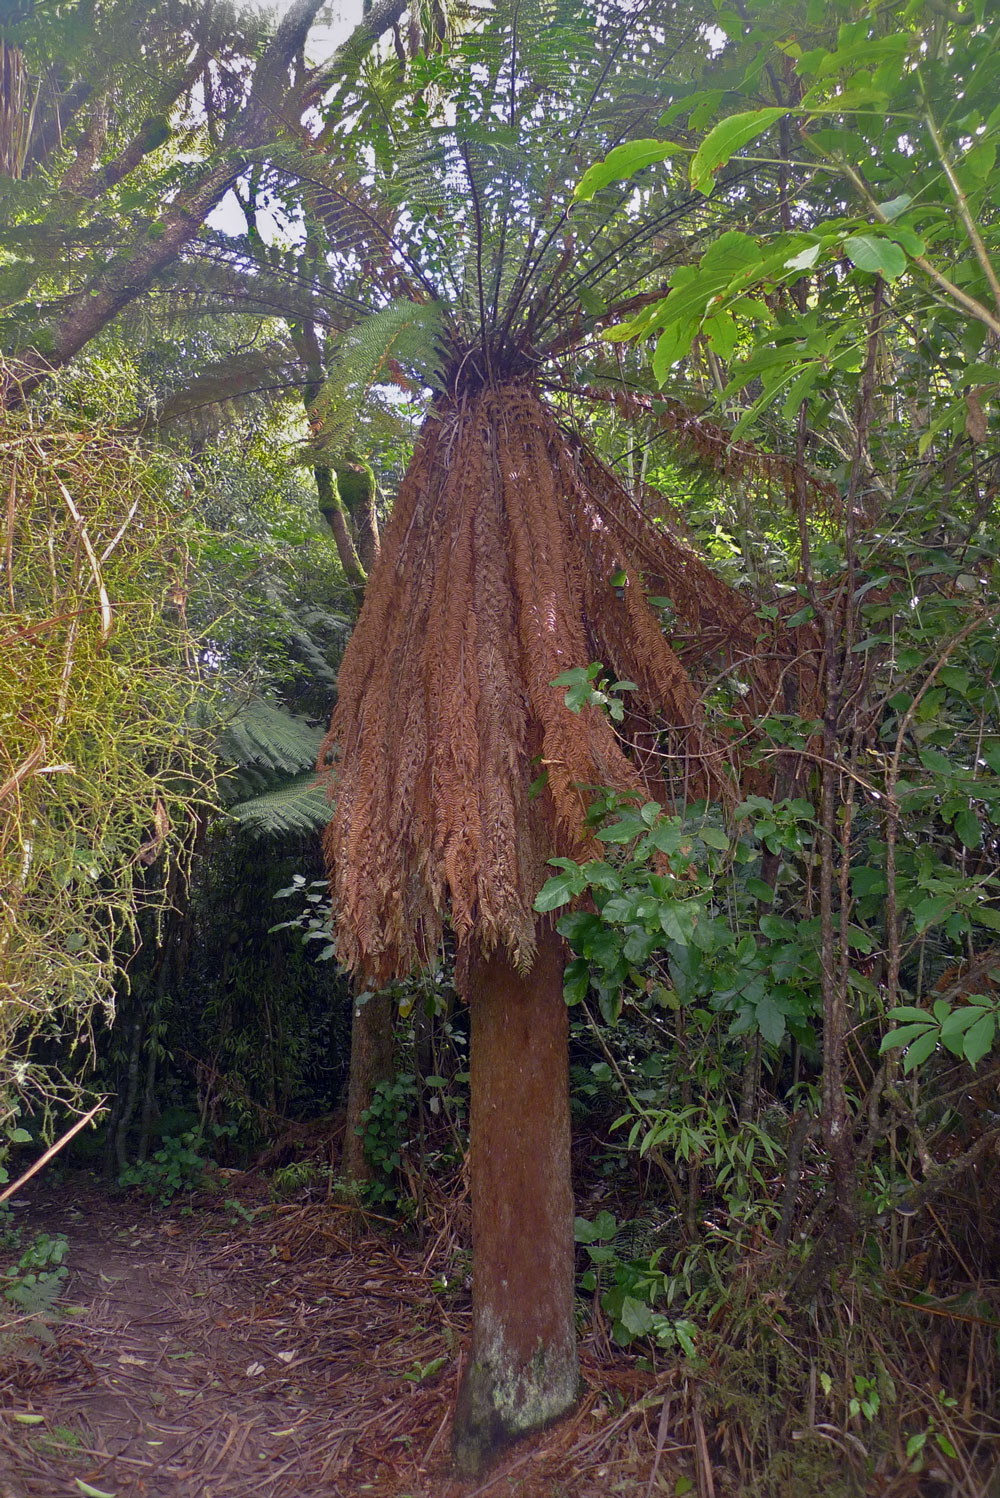 Tree fern with a full skirt of dead fronds